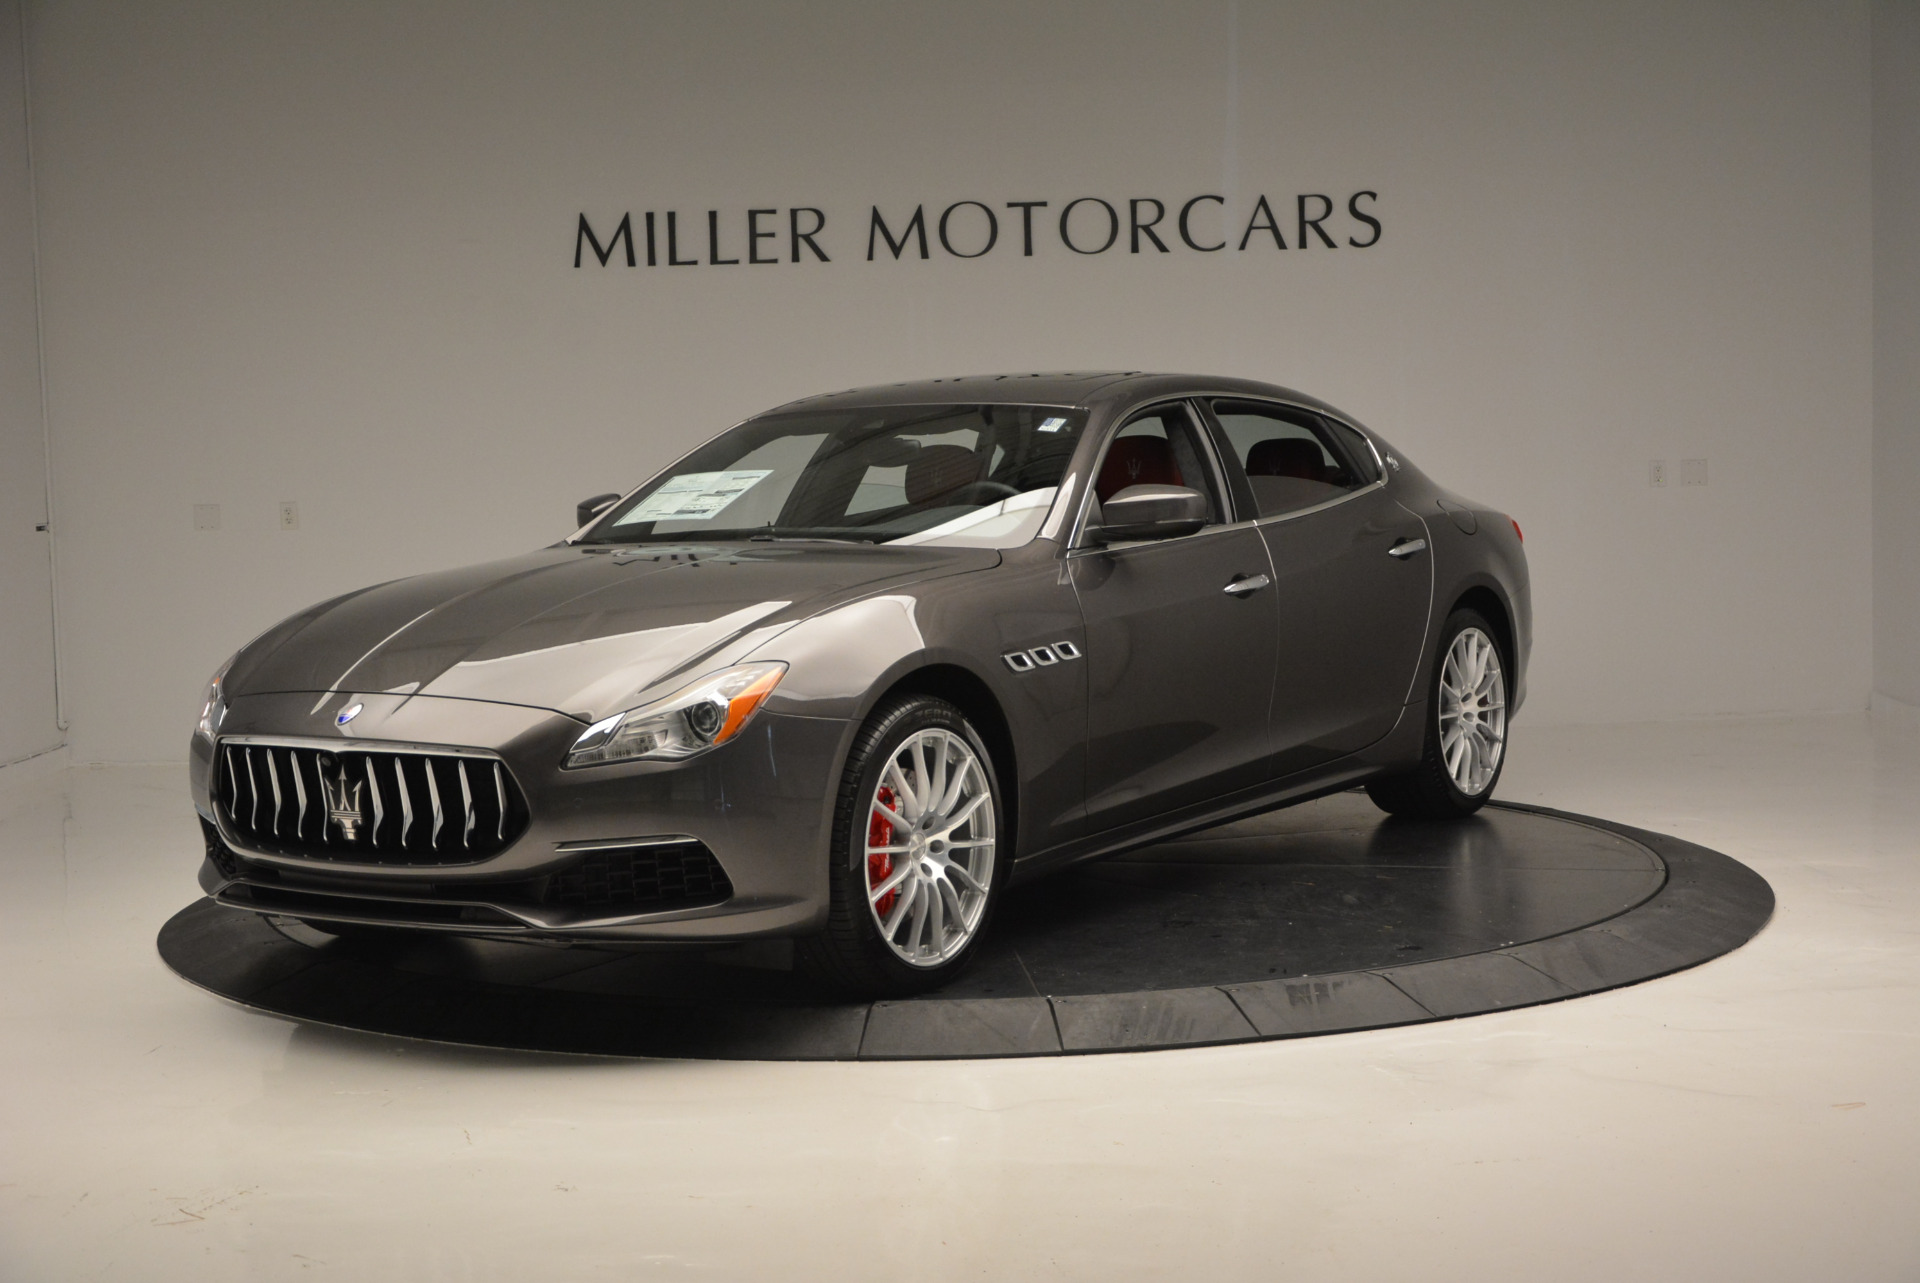 New 2017 Maserati Quattroporte S Q4 GranLusso For Sale In Greenwich, CT